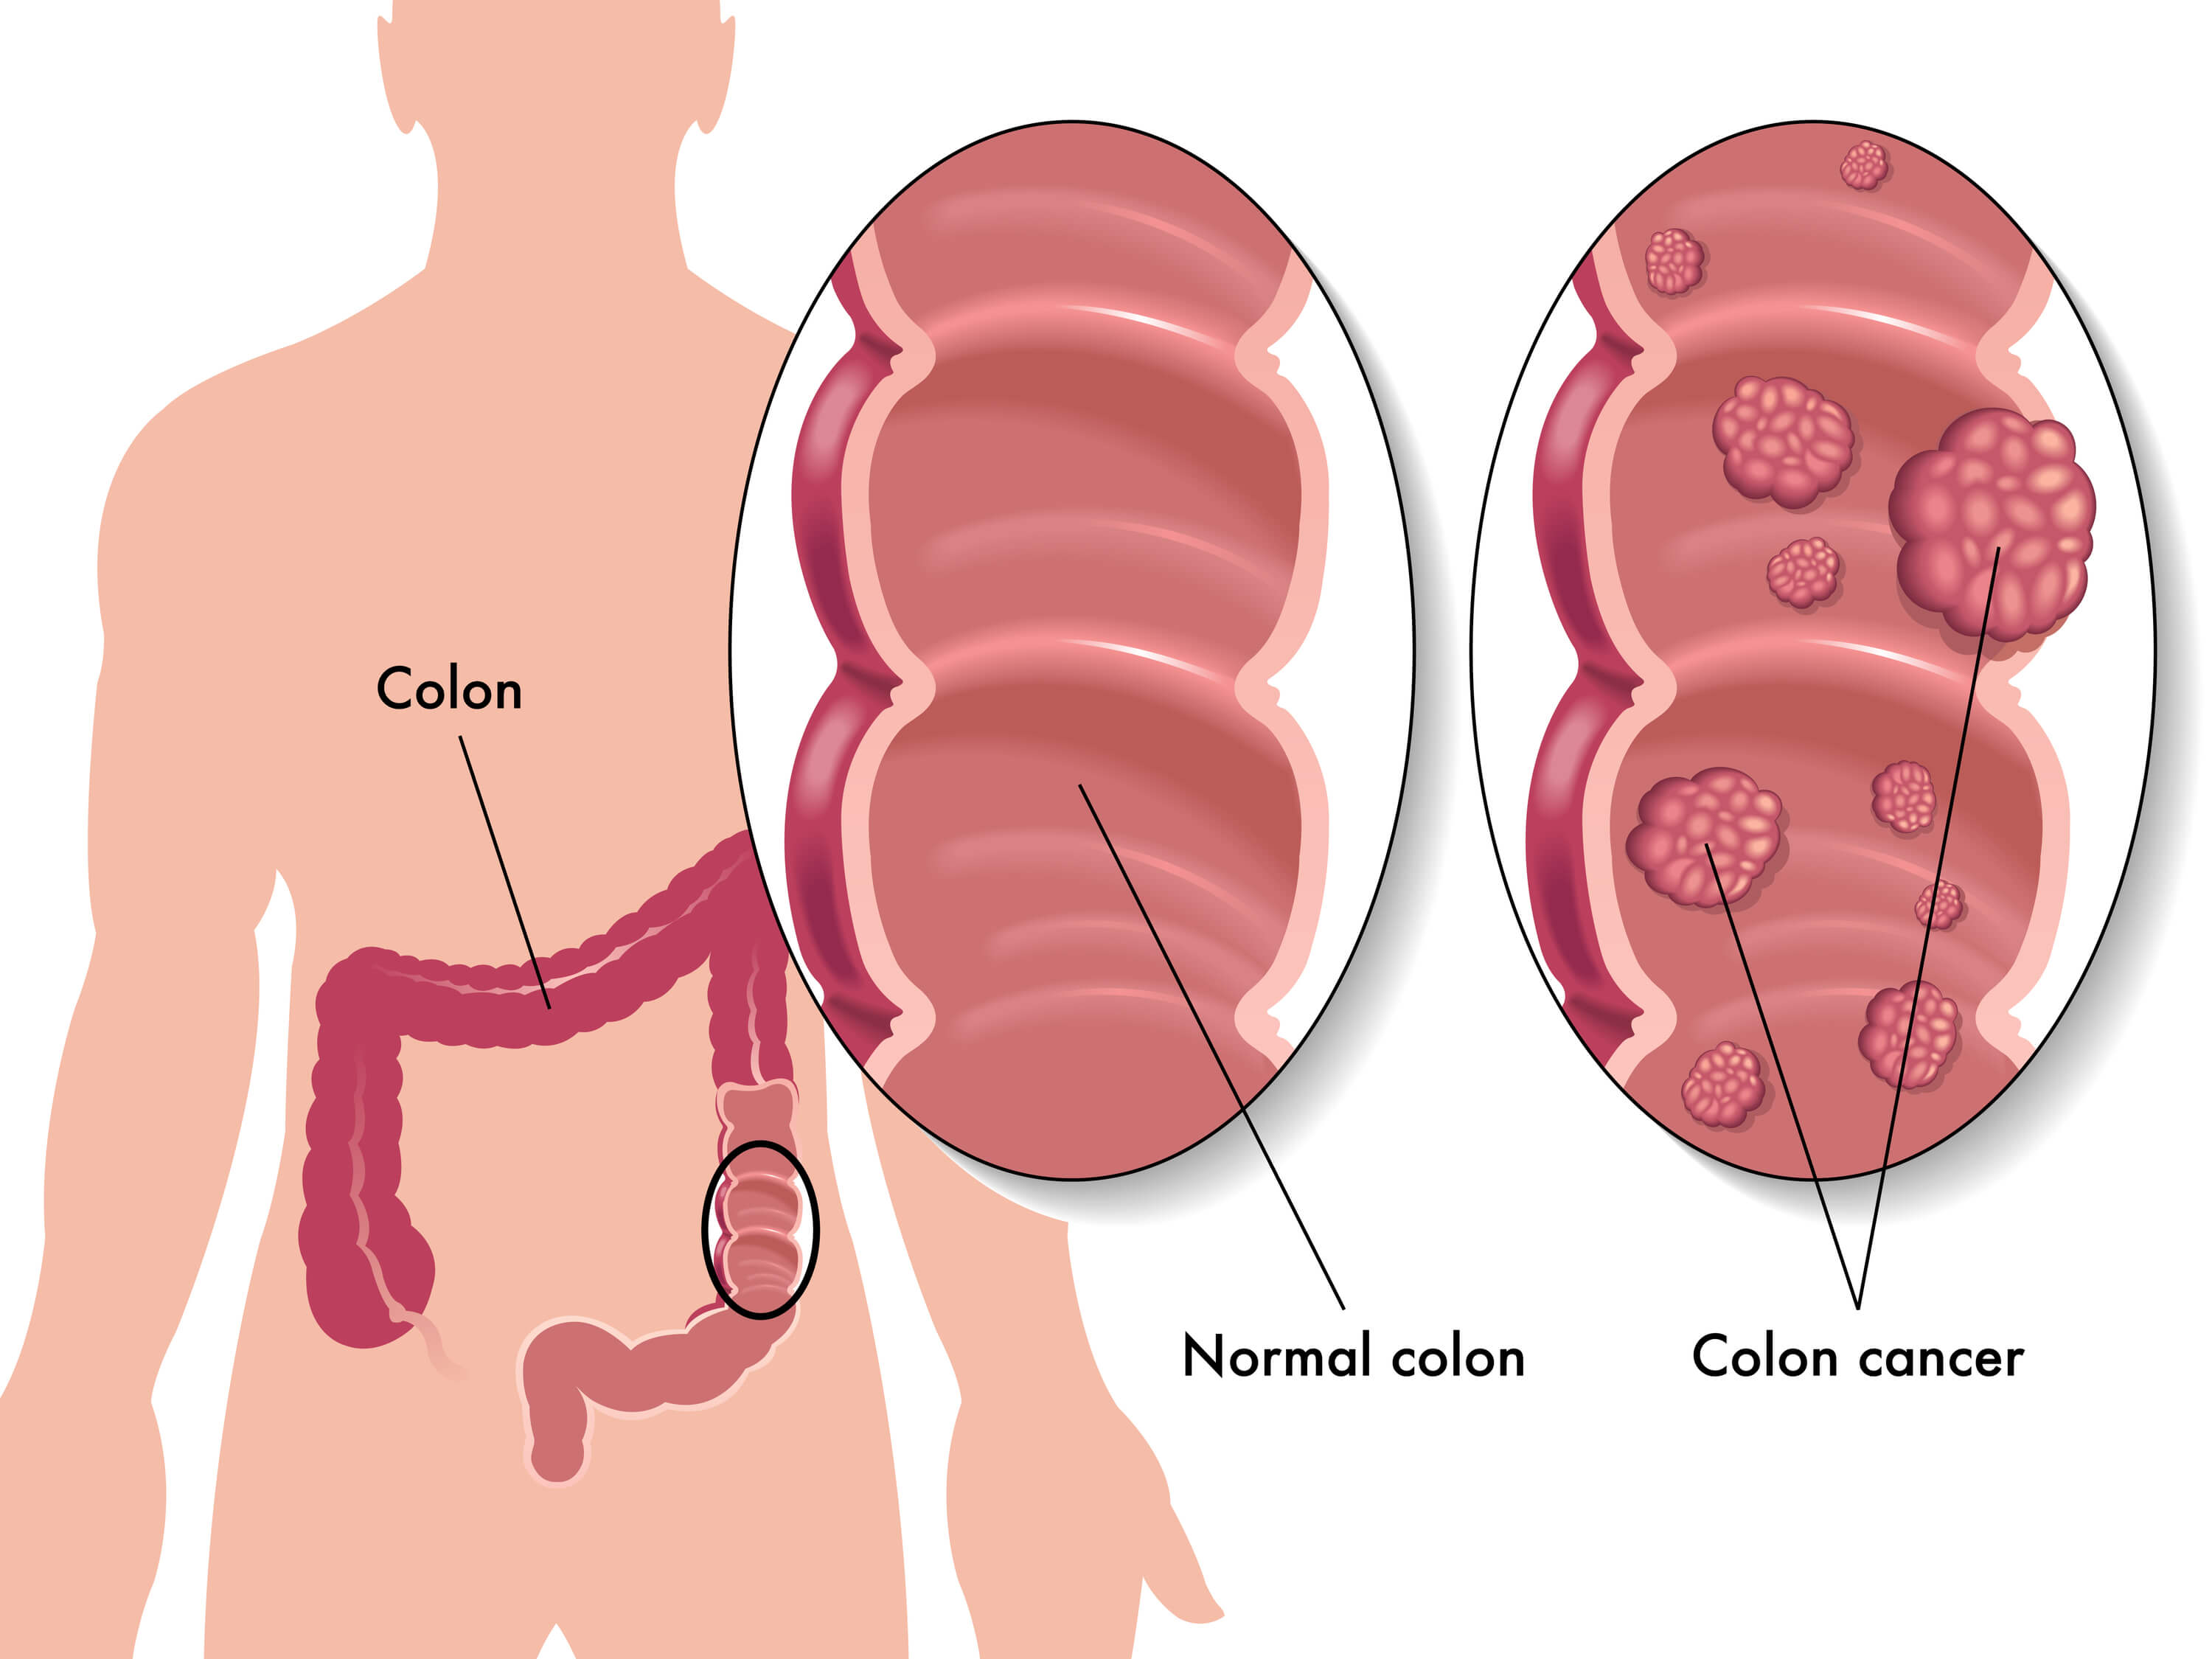 5 Tips to Help Prevent Colon Cancer